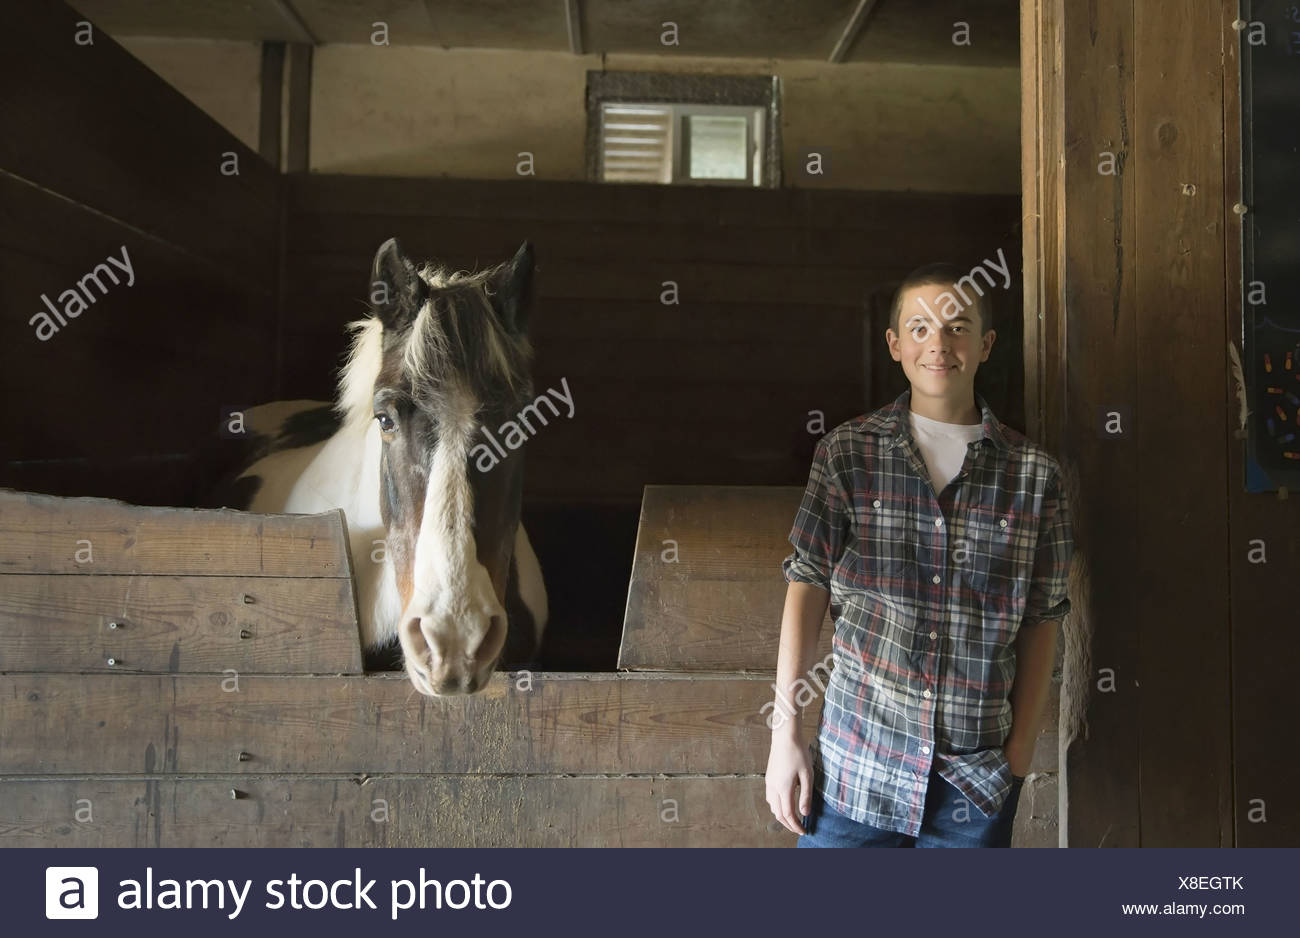 A man standing by horsebox in the stables at an animal sanctuary A horse with its head over the gate Saugerties New York USA - Stock Image